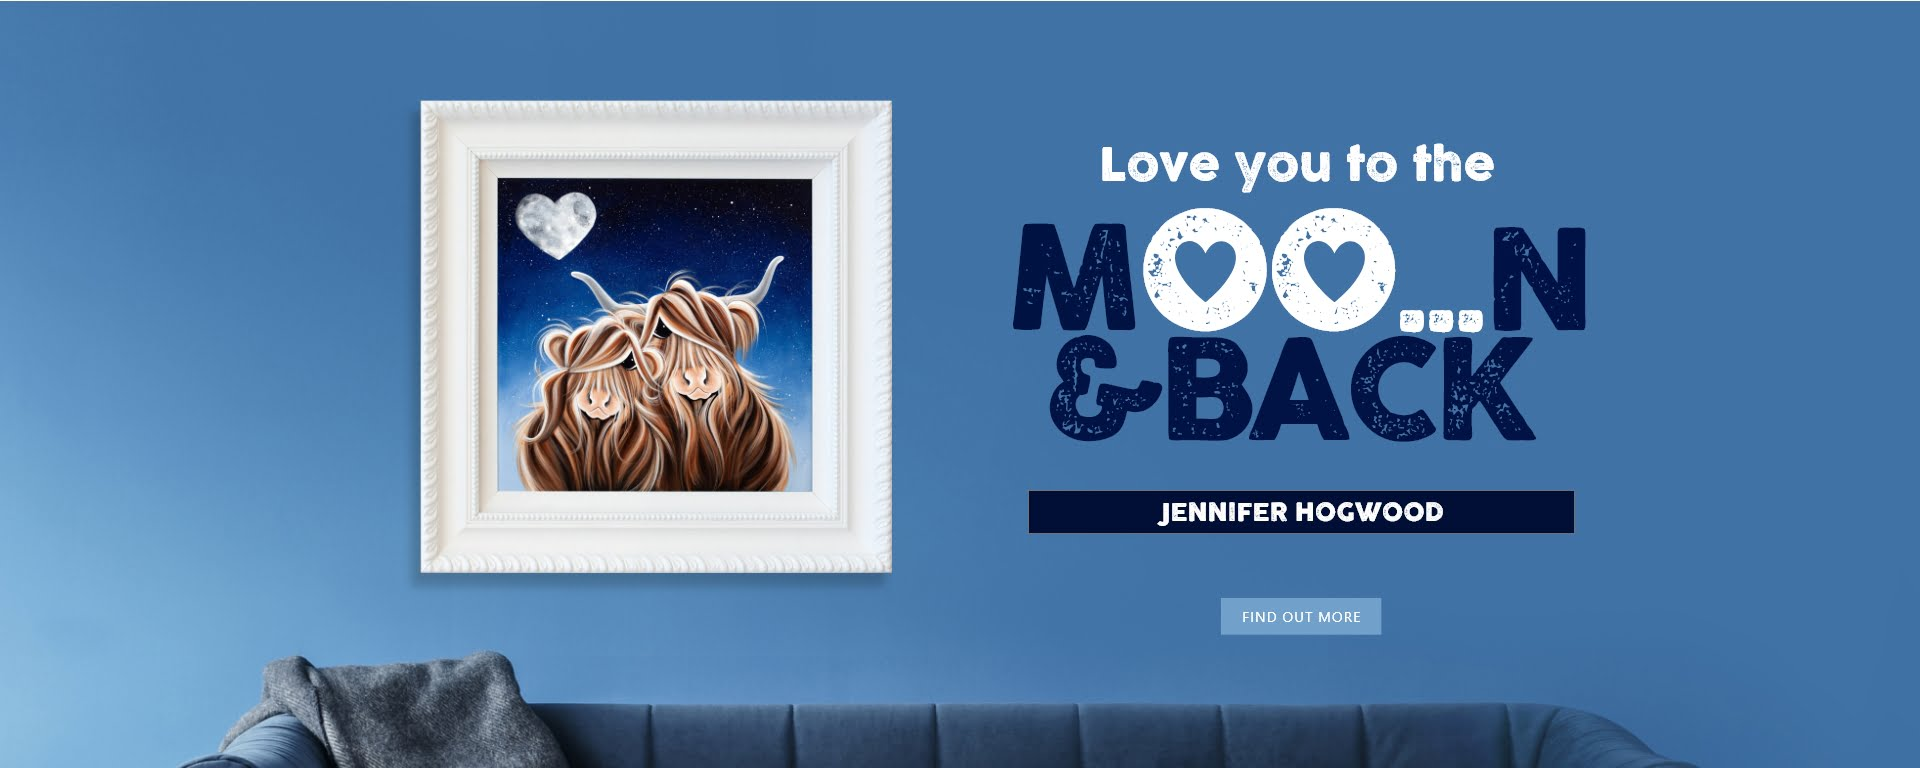 Love You To The Moo-n and Back! An Exciting New Release from Jennifer Hogwood.